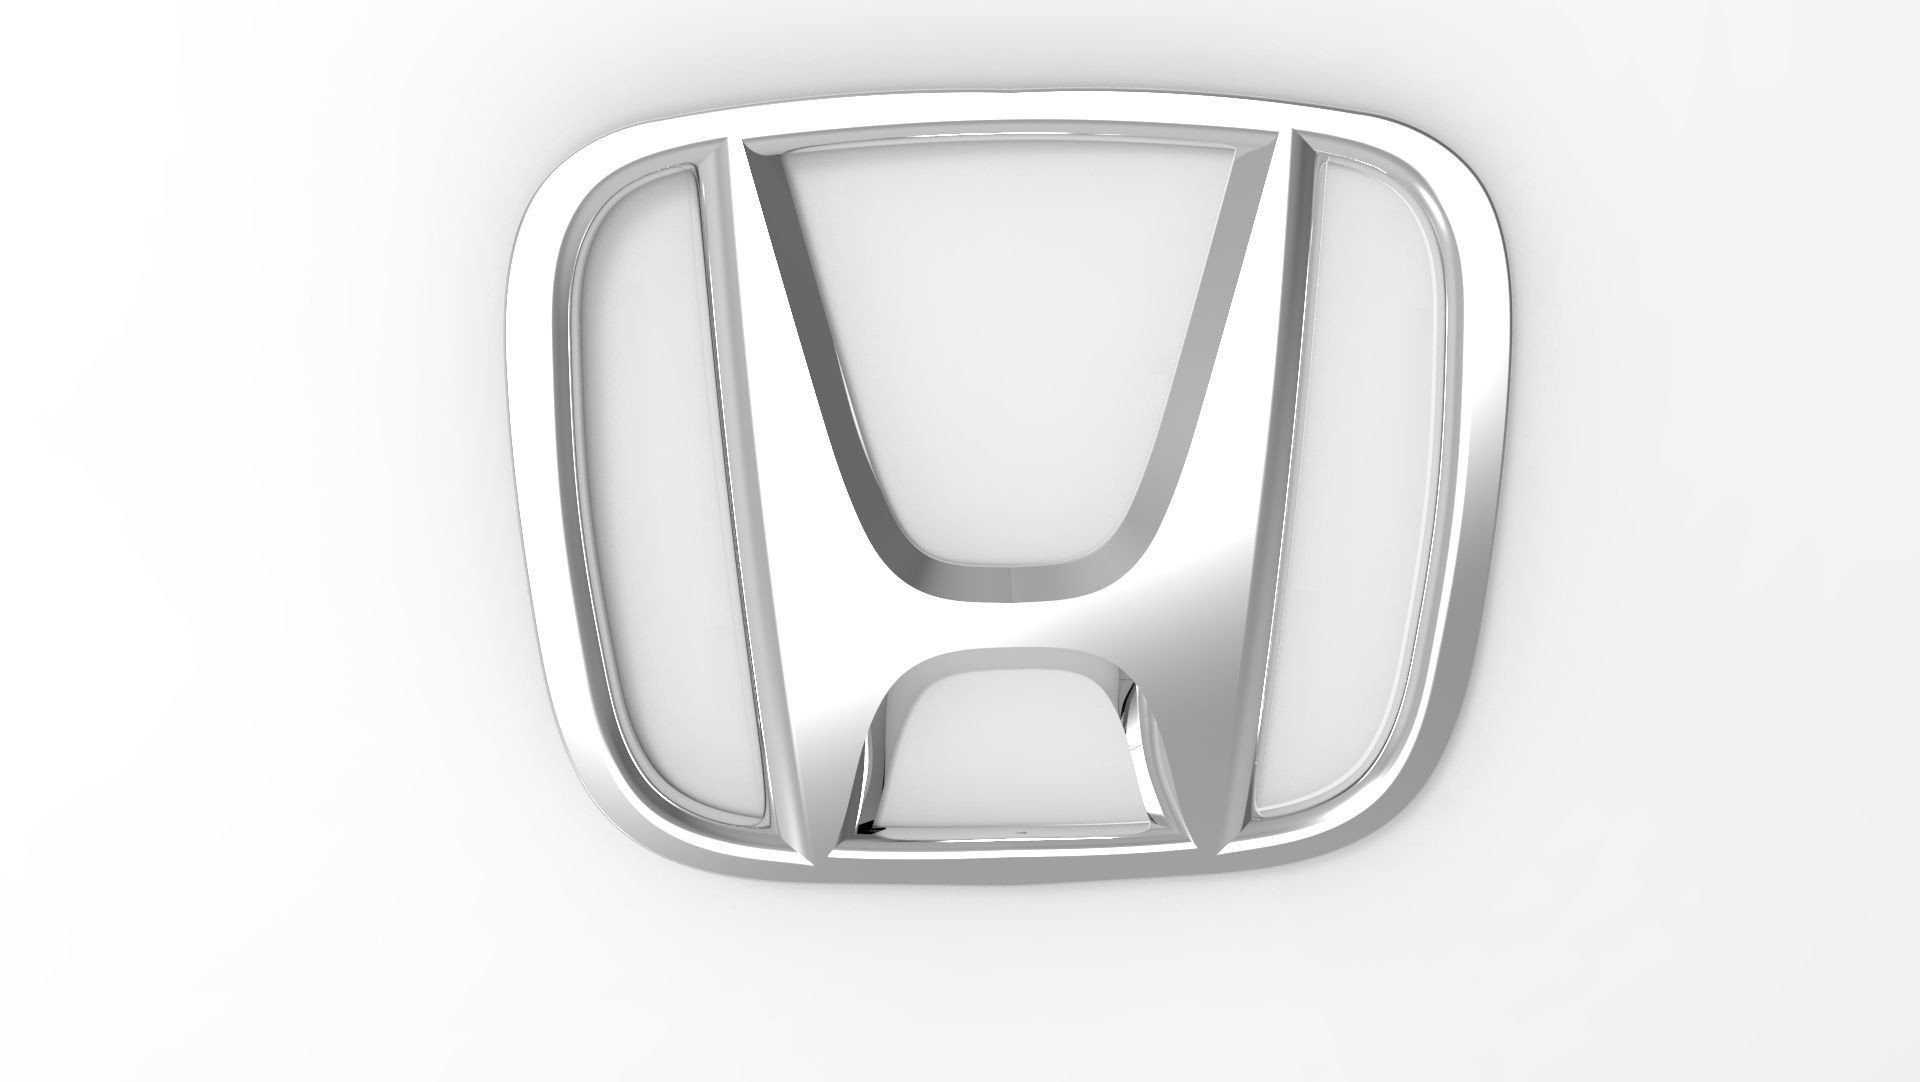 … wallpaper cave; honda logo 3d model stl …